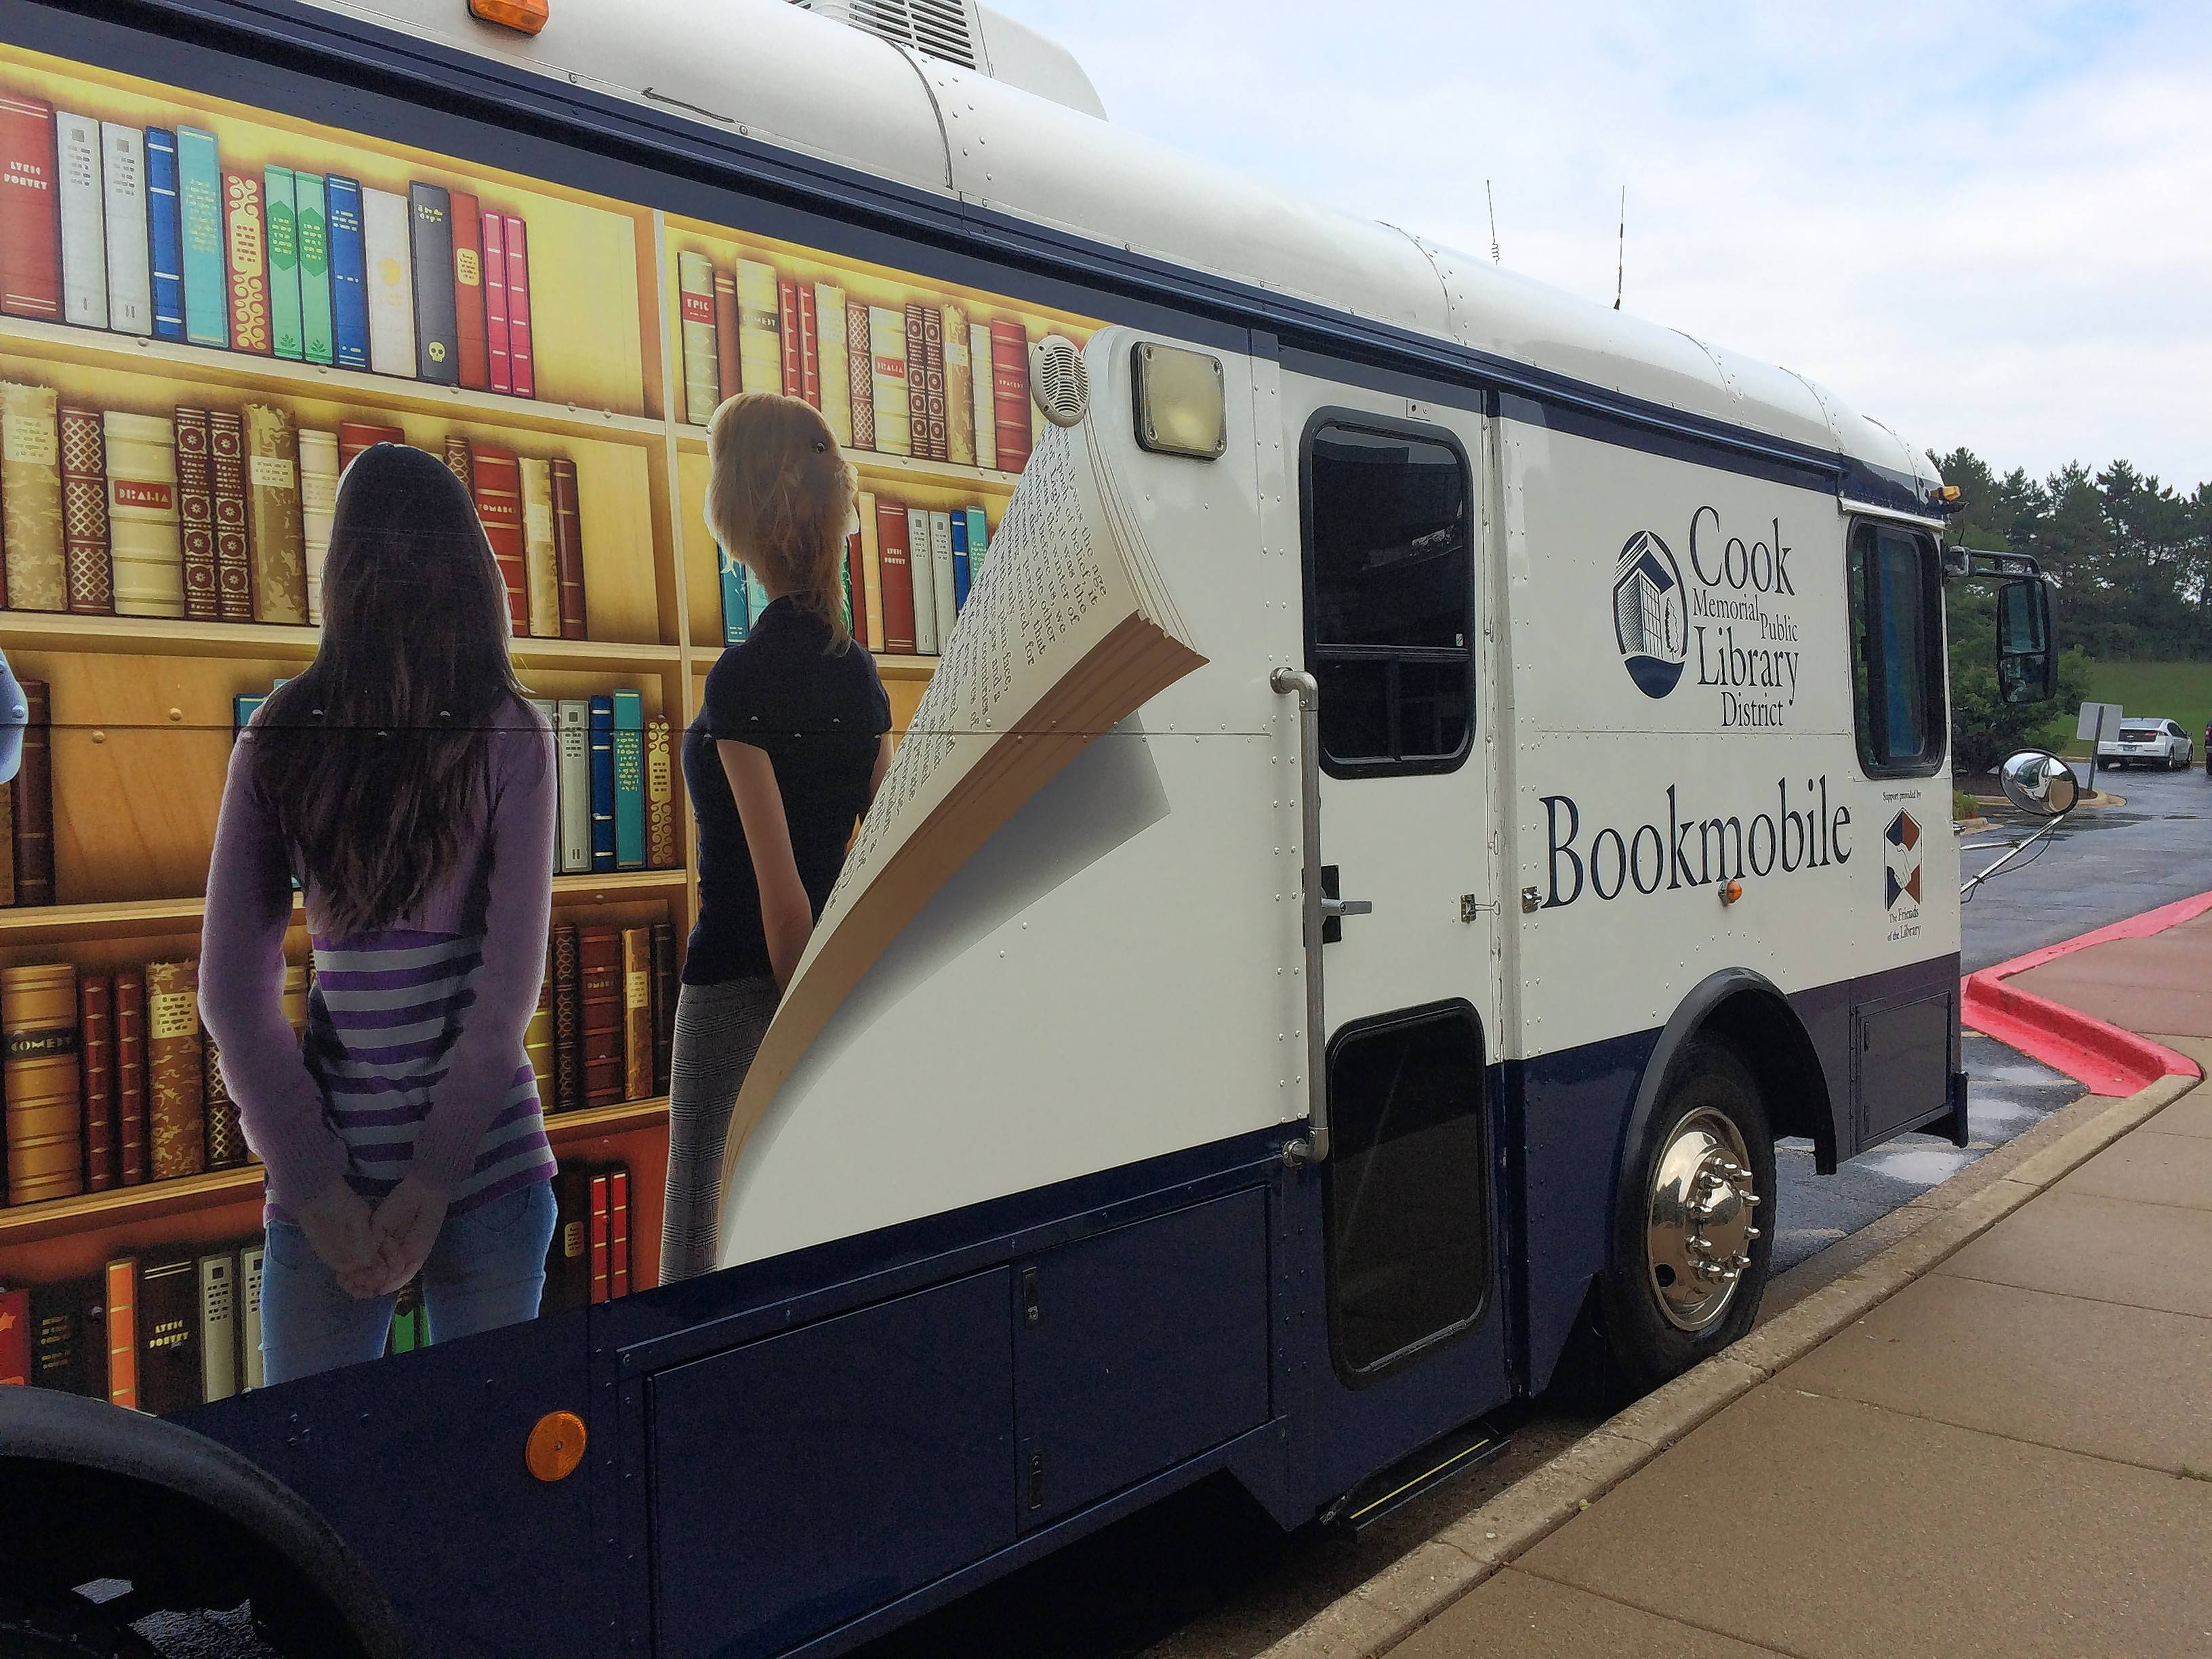 Cook Memorial Library District officials beginning search for new bookmobile